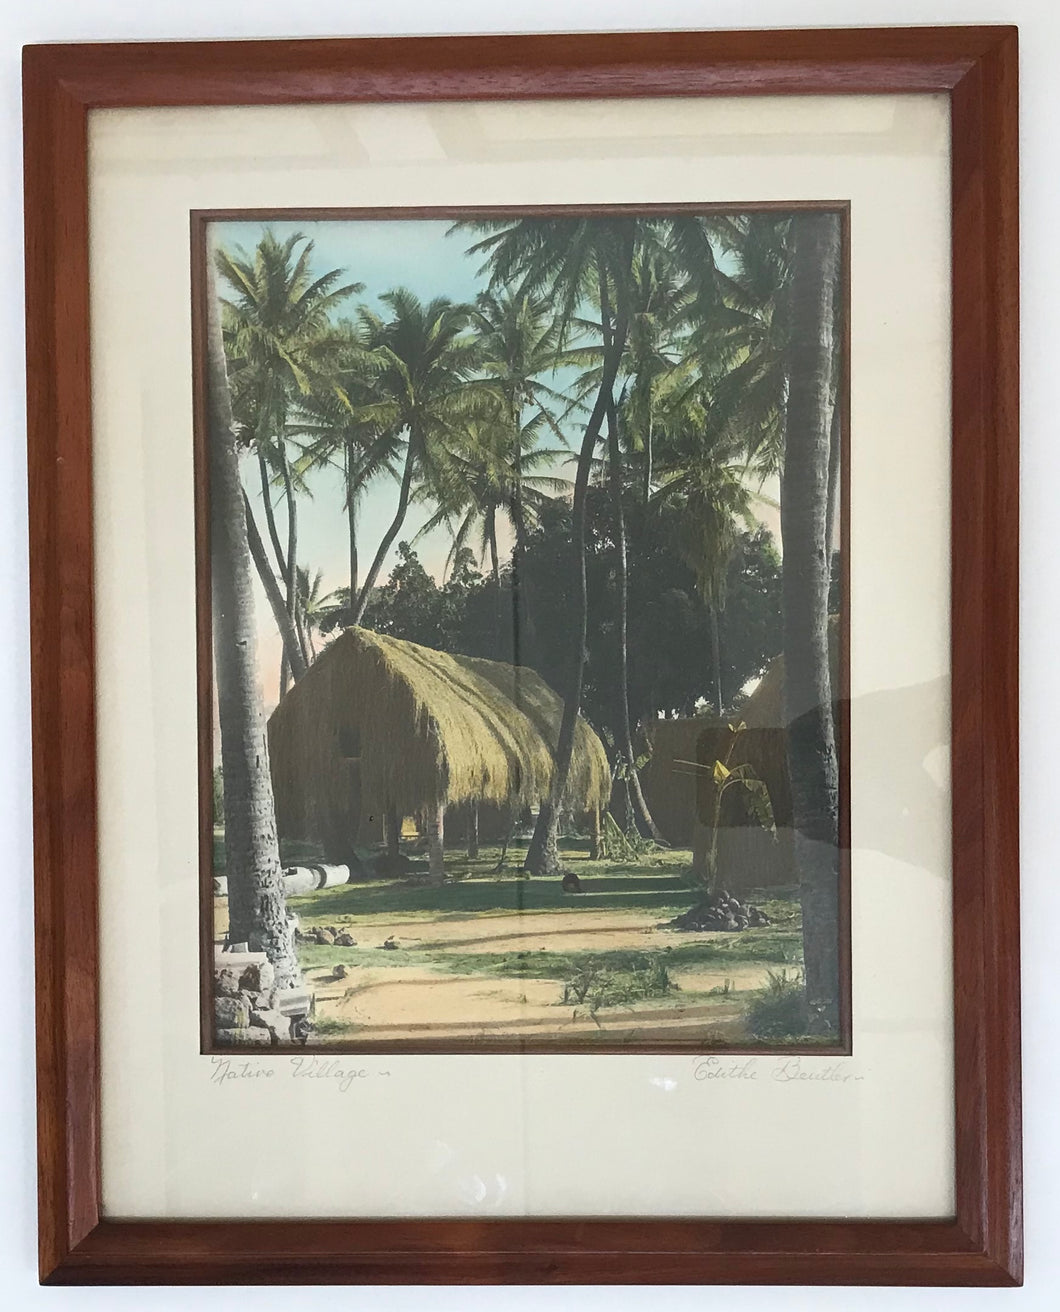 1940's Vintage Hand Colored Photo By Edithe Beutler 'Native Village'